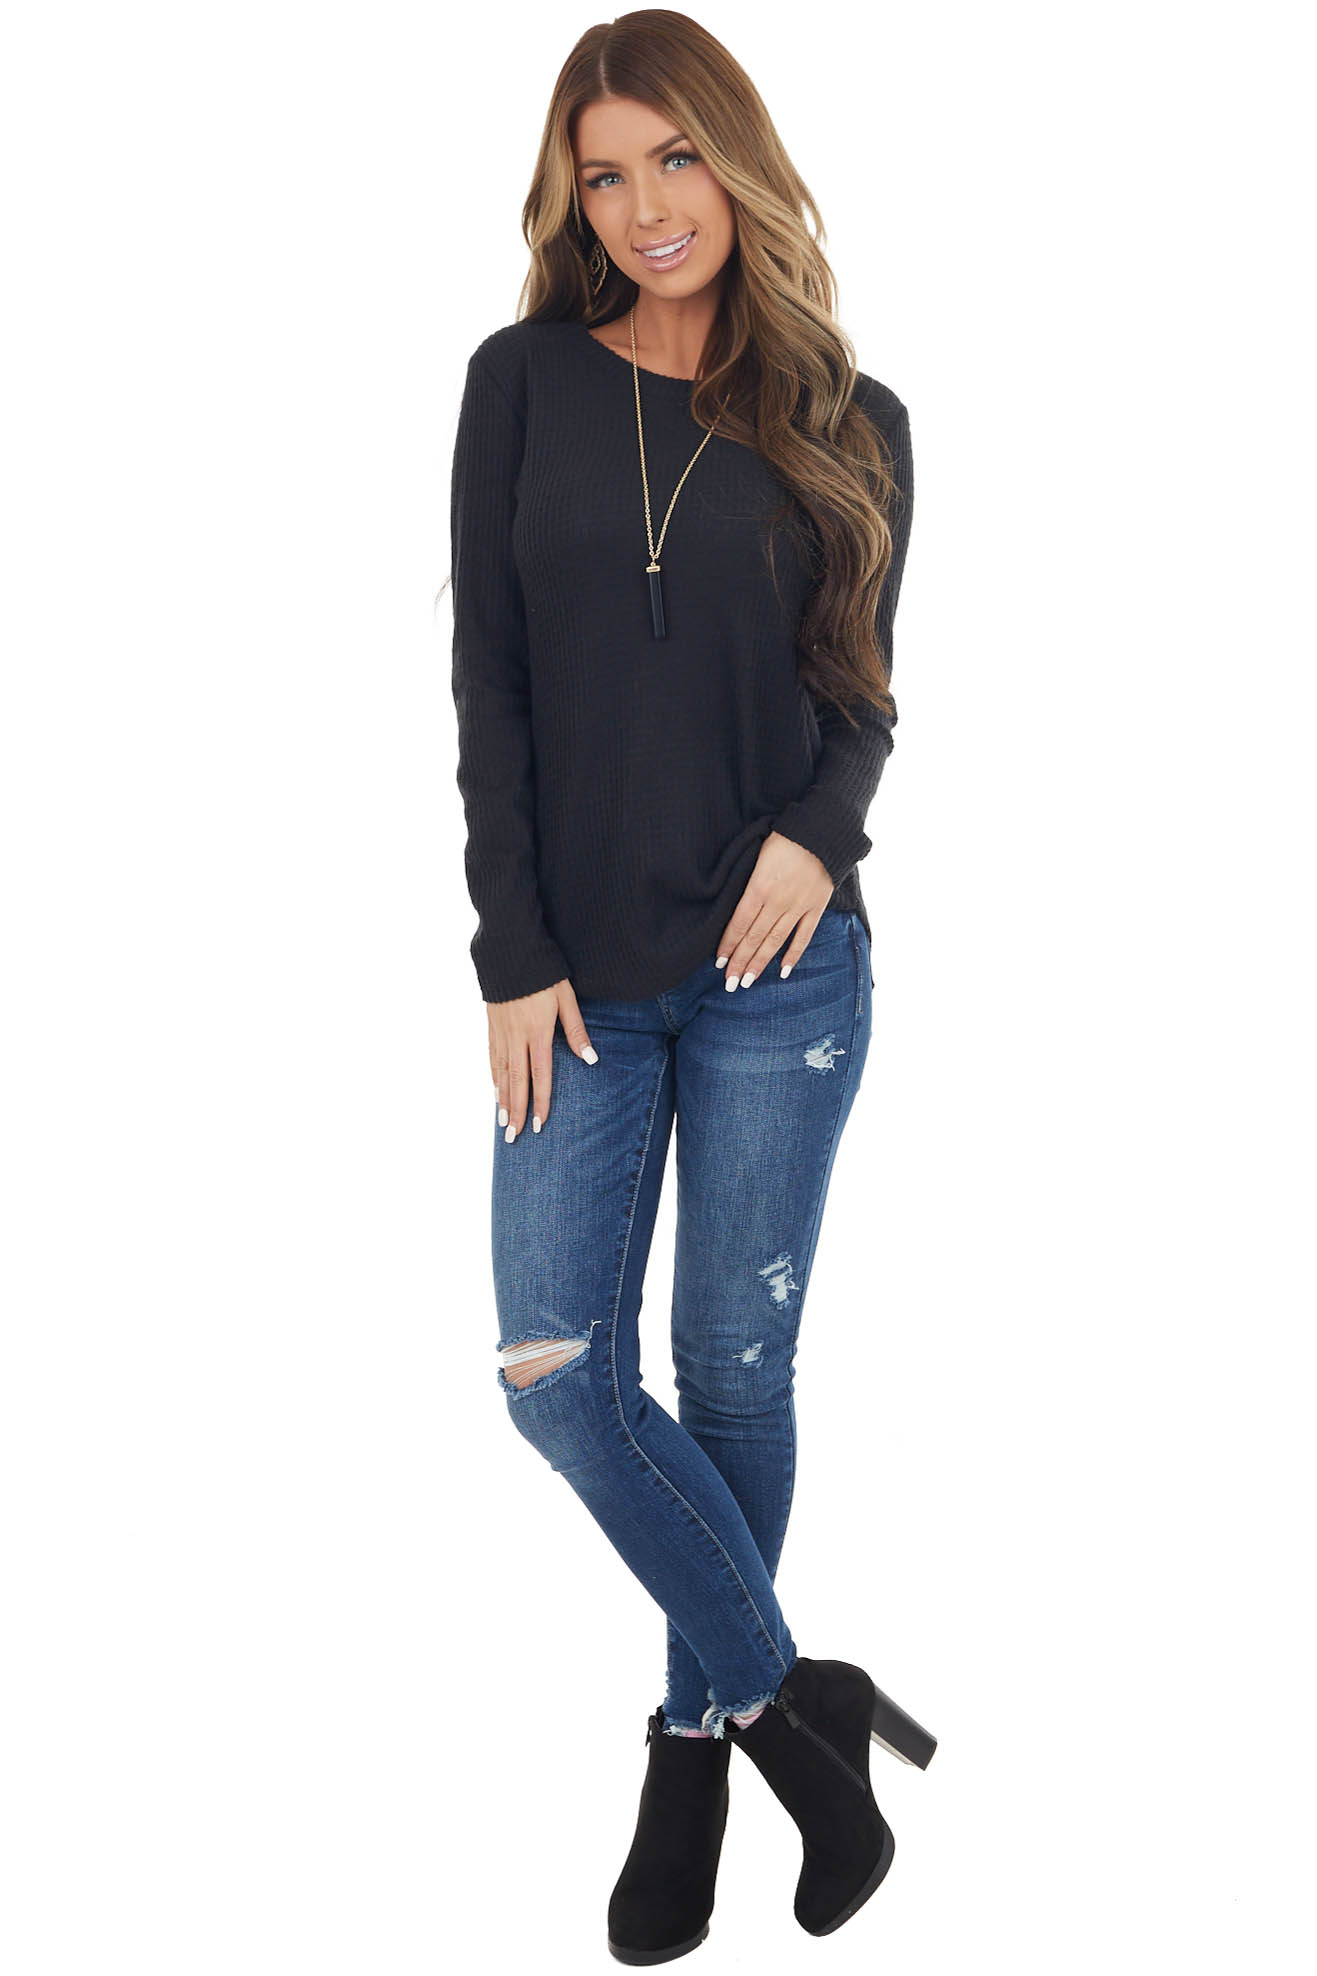 Black Soft Waffle Knit Long Sleeve Top with Rounded Hemline